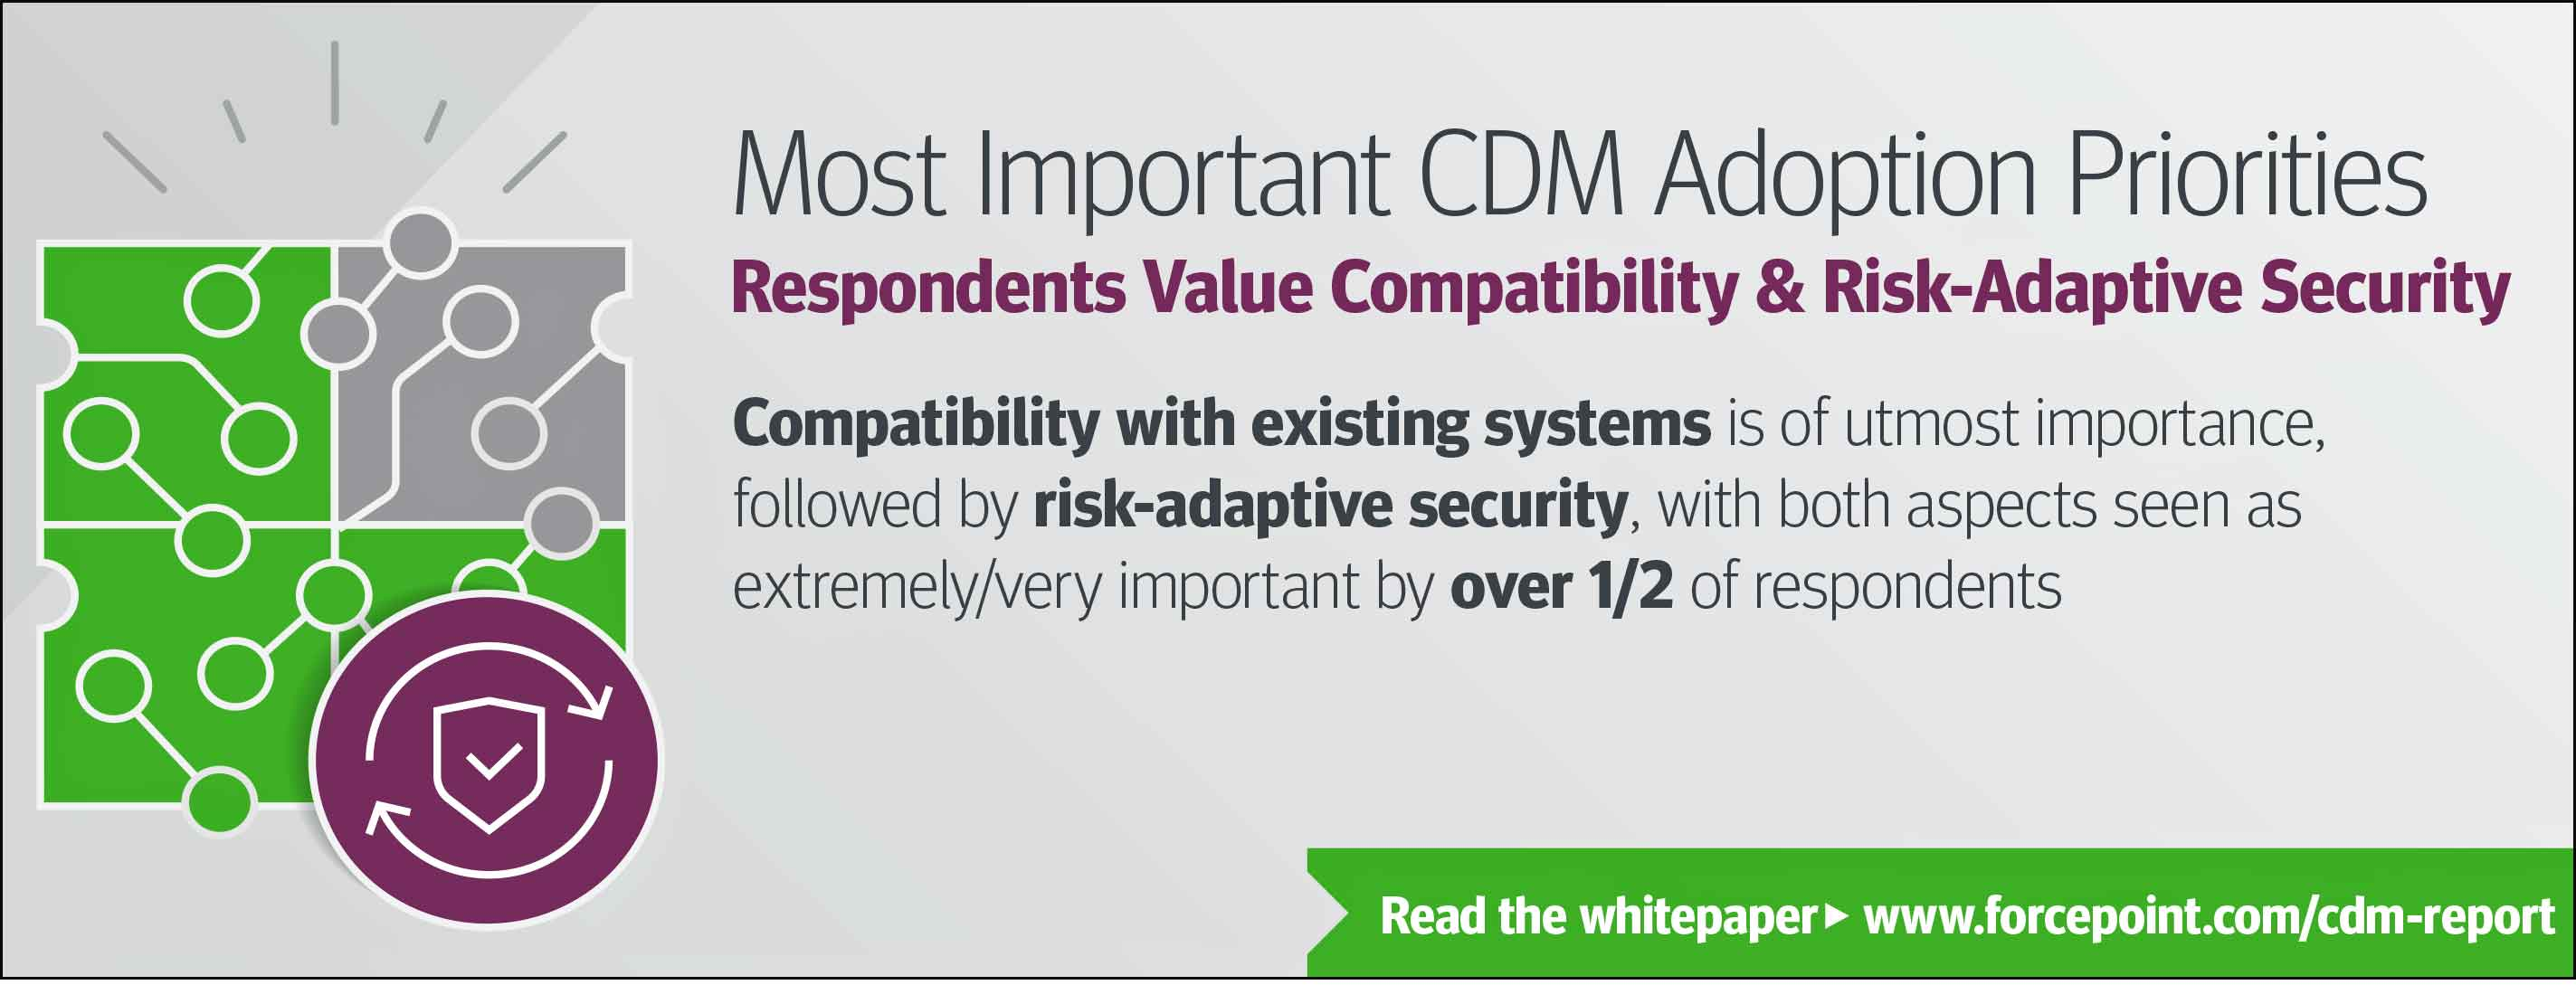 Feds Weigh In on Impact of CDM Program, Forcepoint Survey